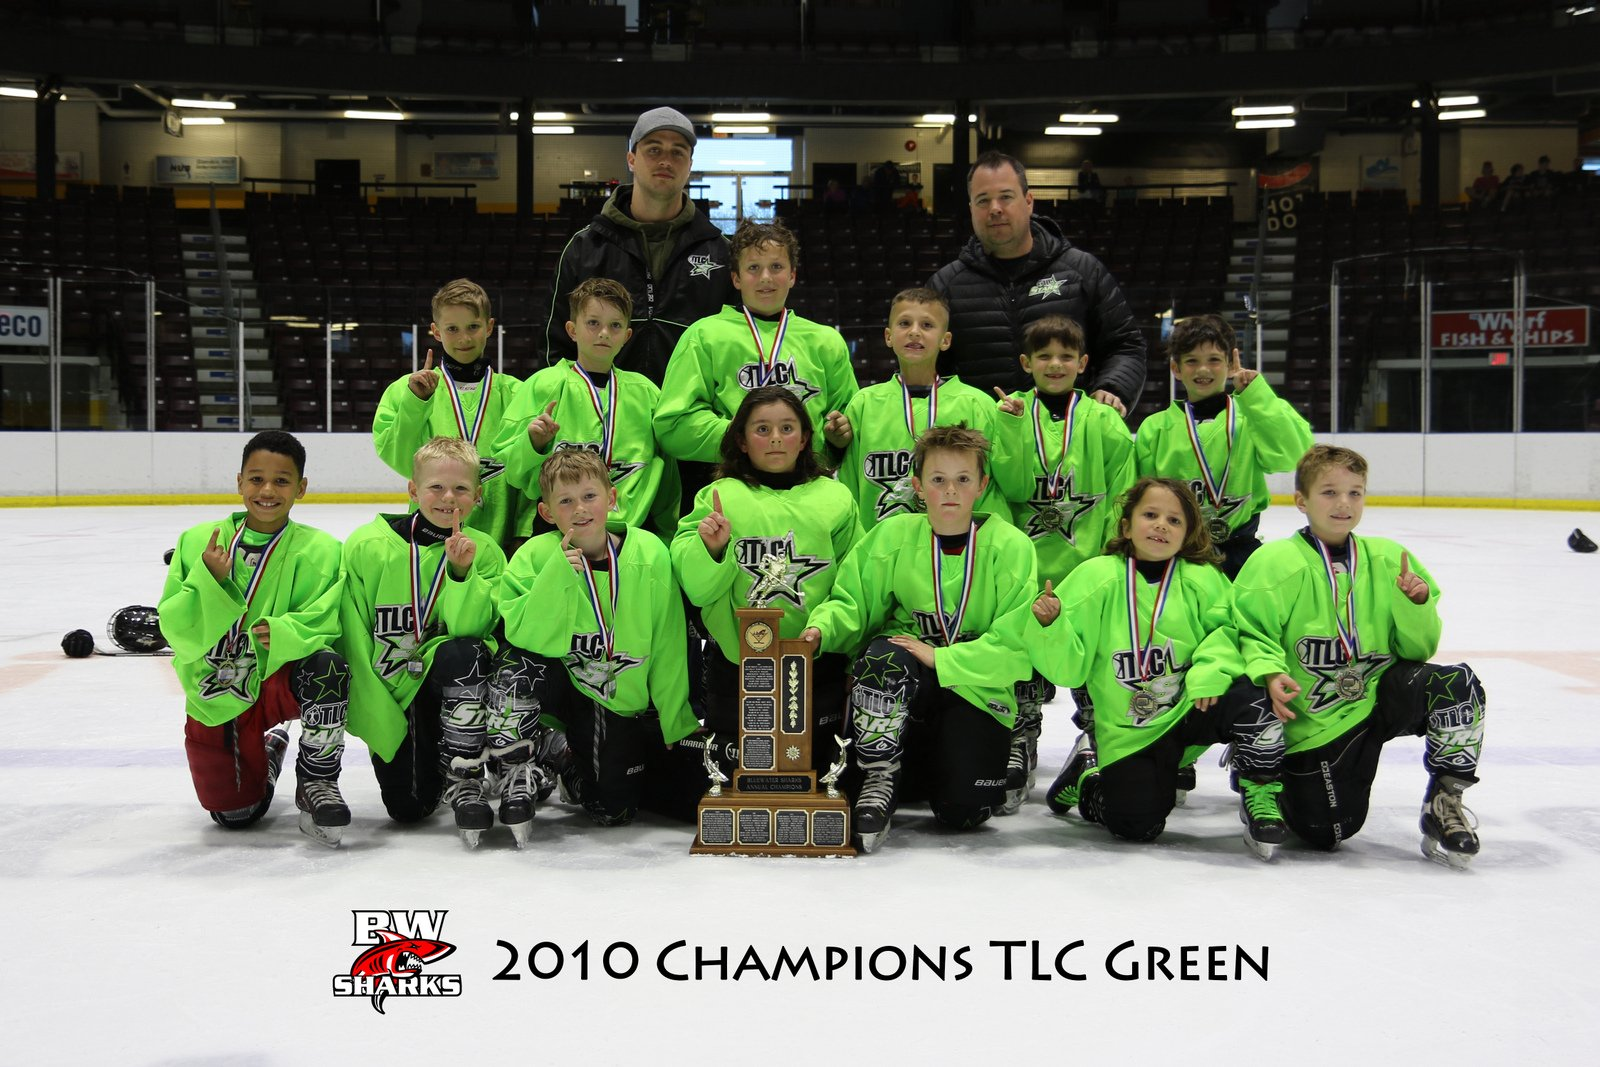 2010-Champions-TLC-Green-SilverPeak-Studios-Canada-Sarnia-Bluewater-Sharks-Tournament-001